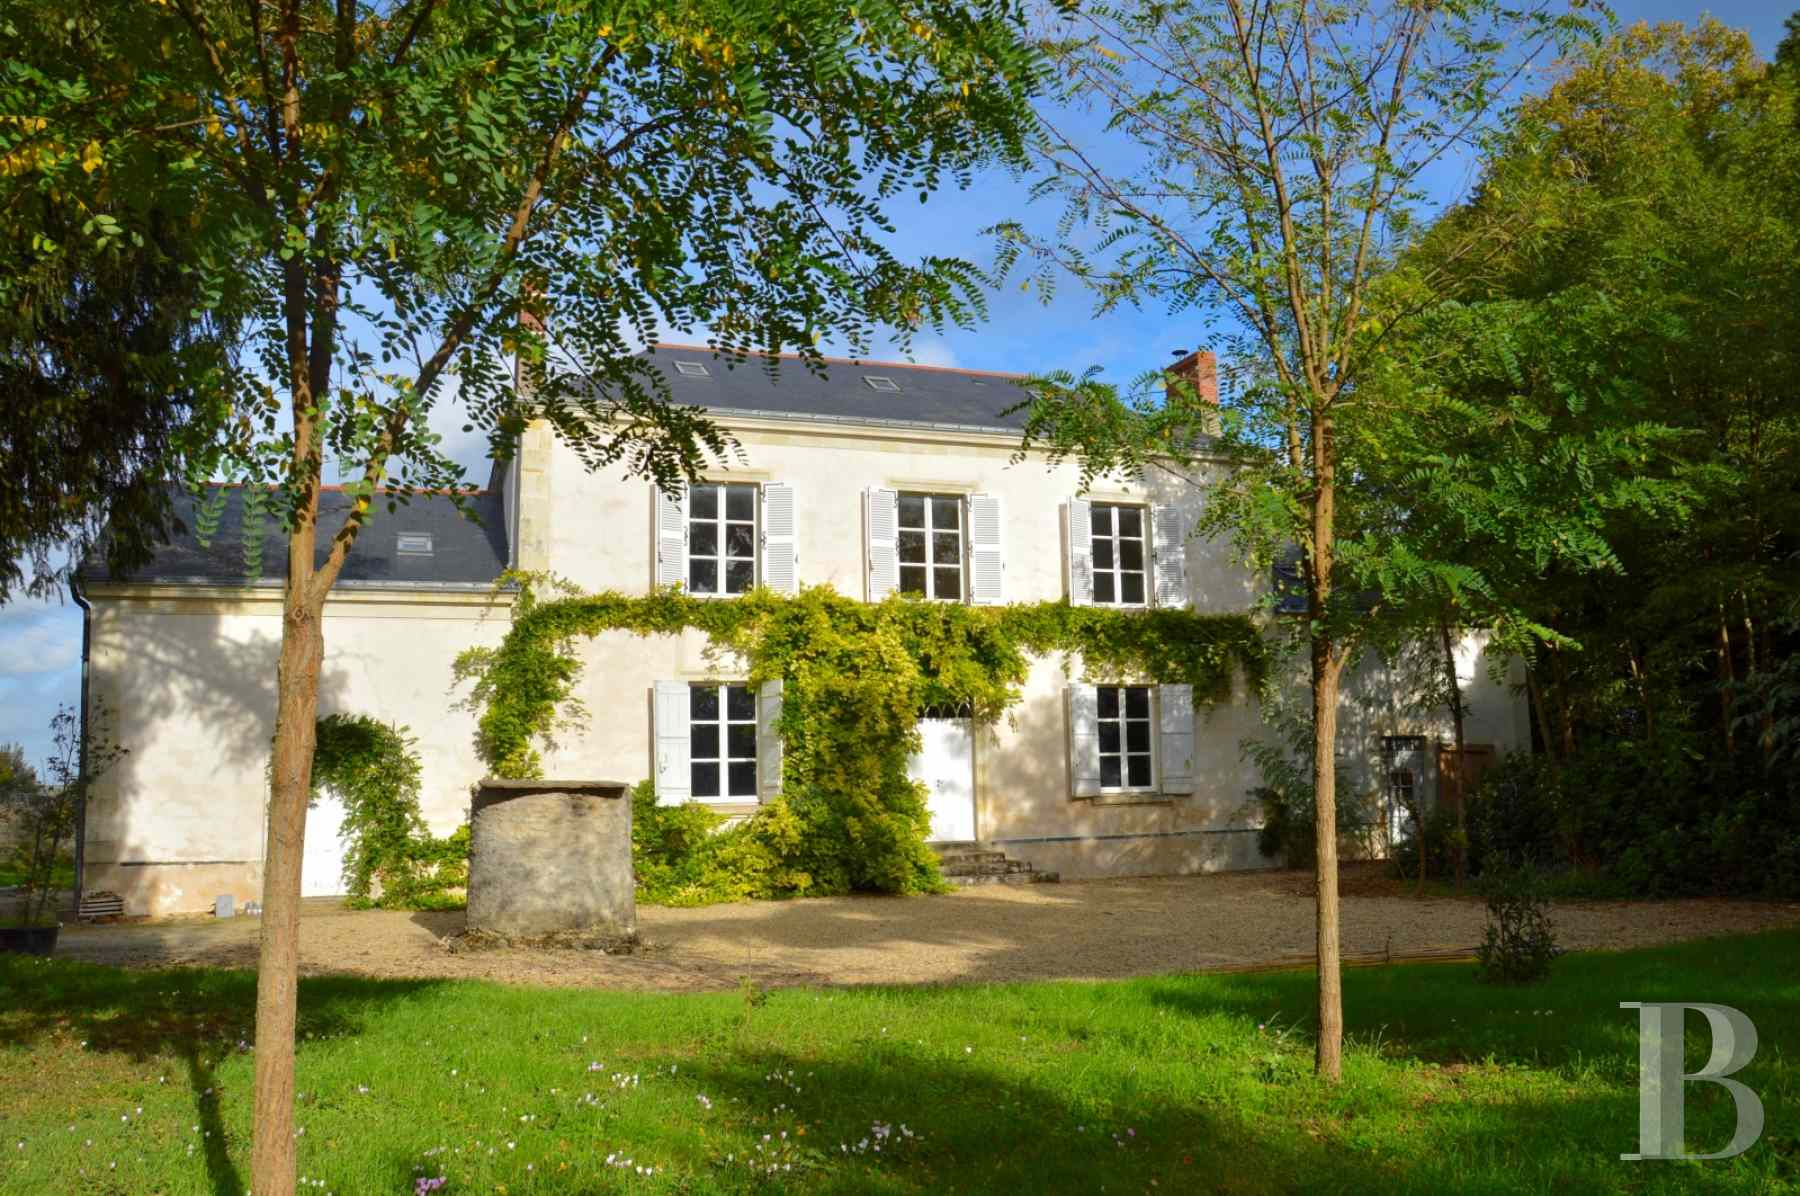 character properties France pays de loire vinegrower house - 1 zoom